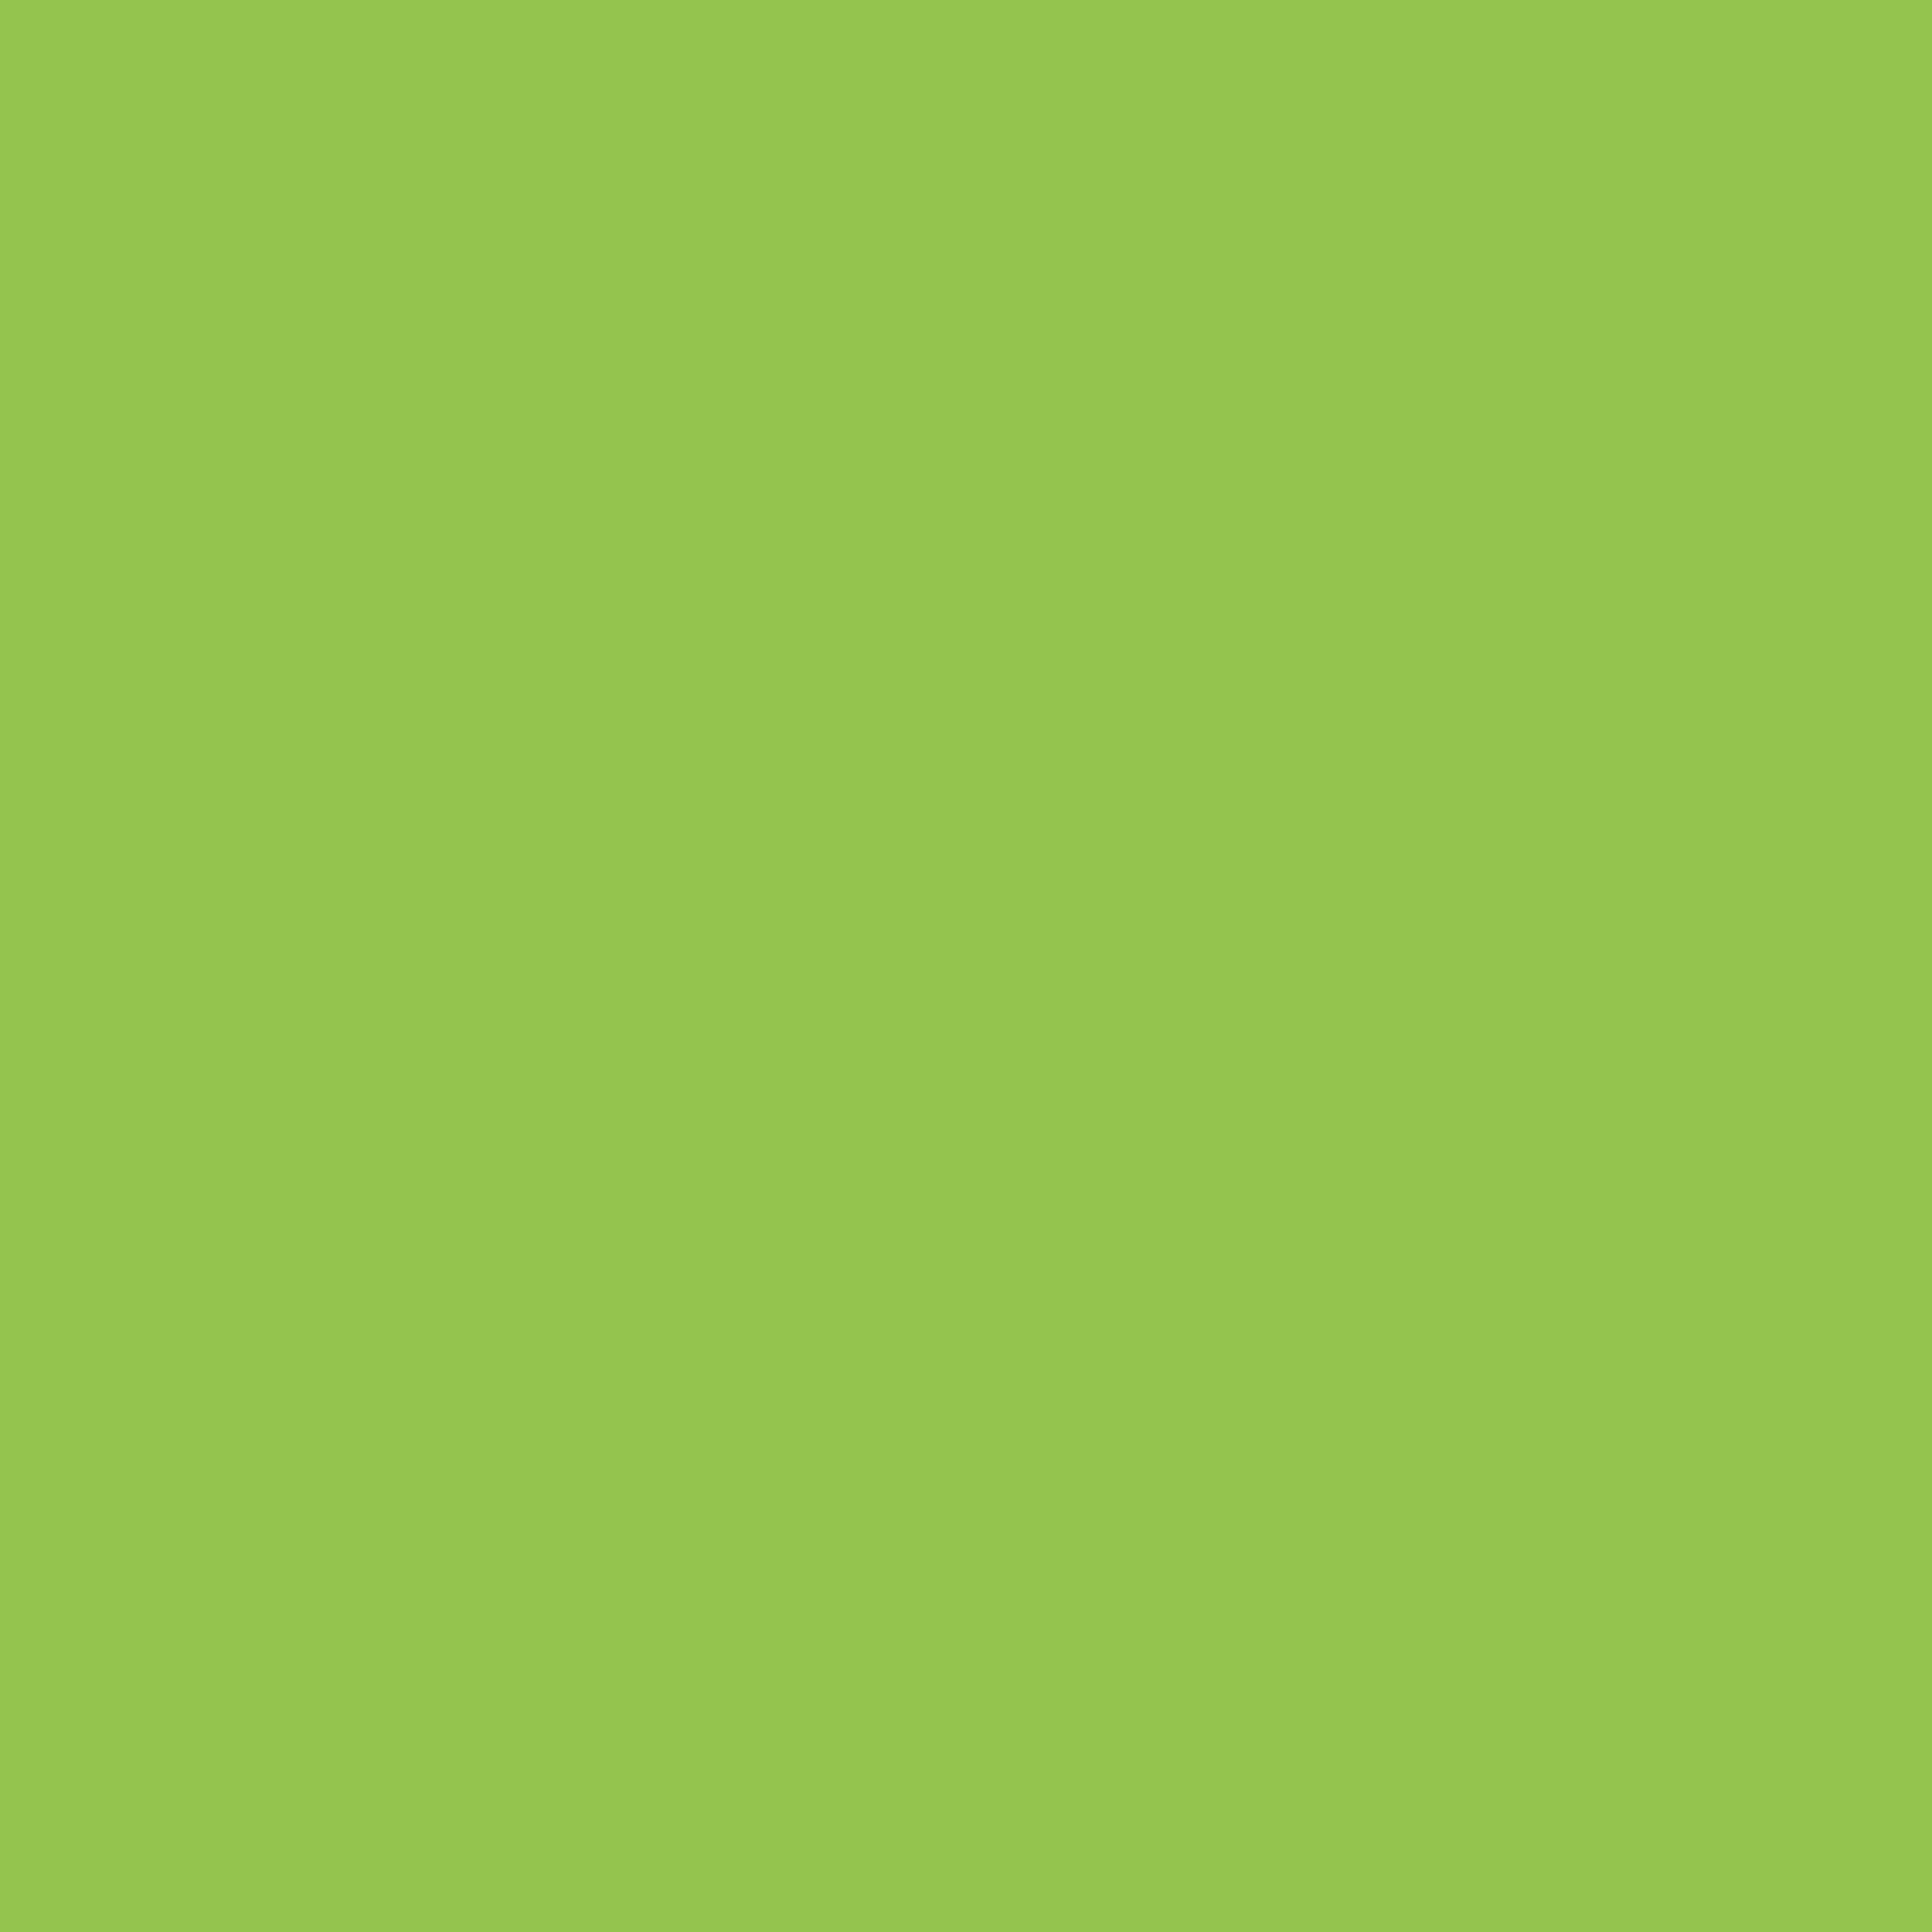 Lime fluo